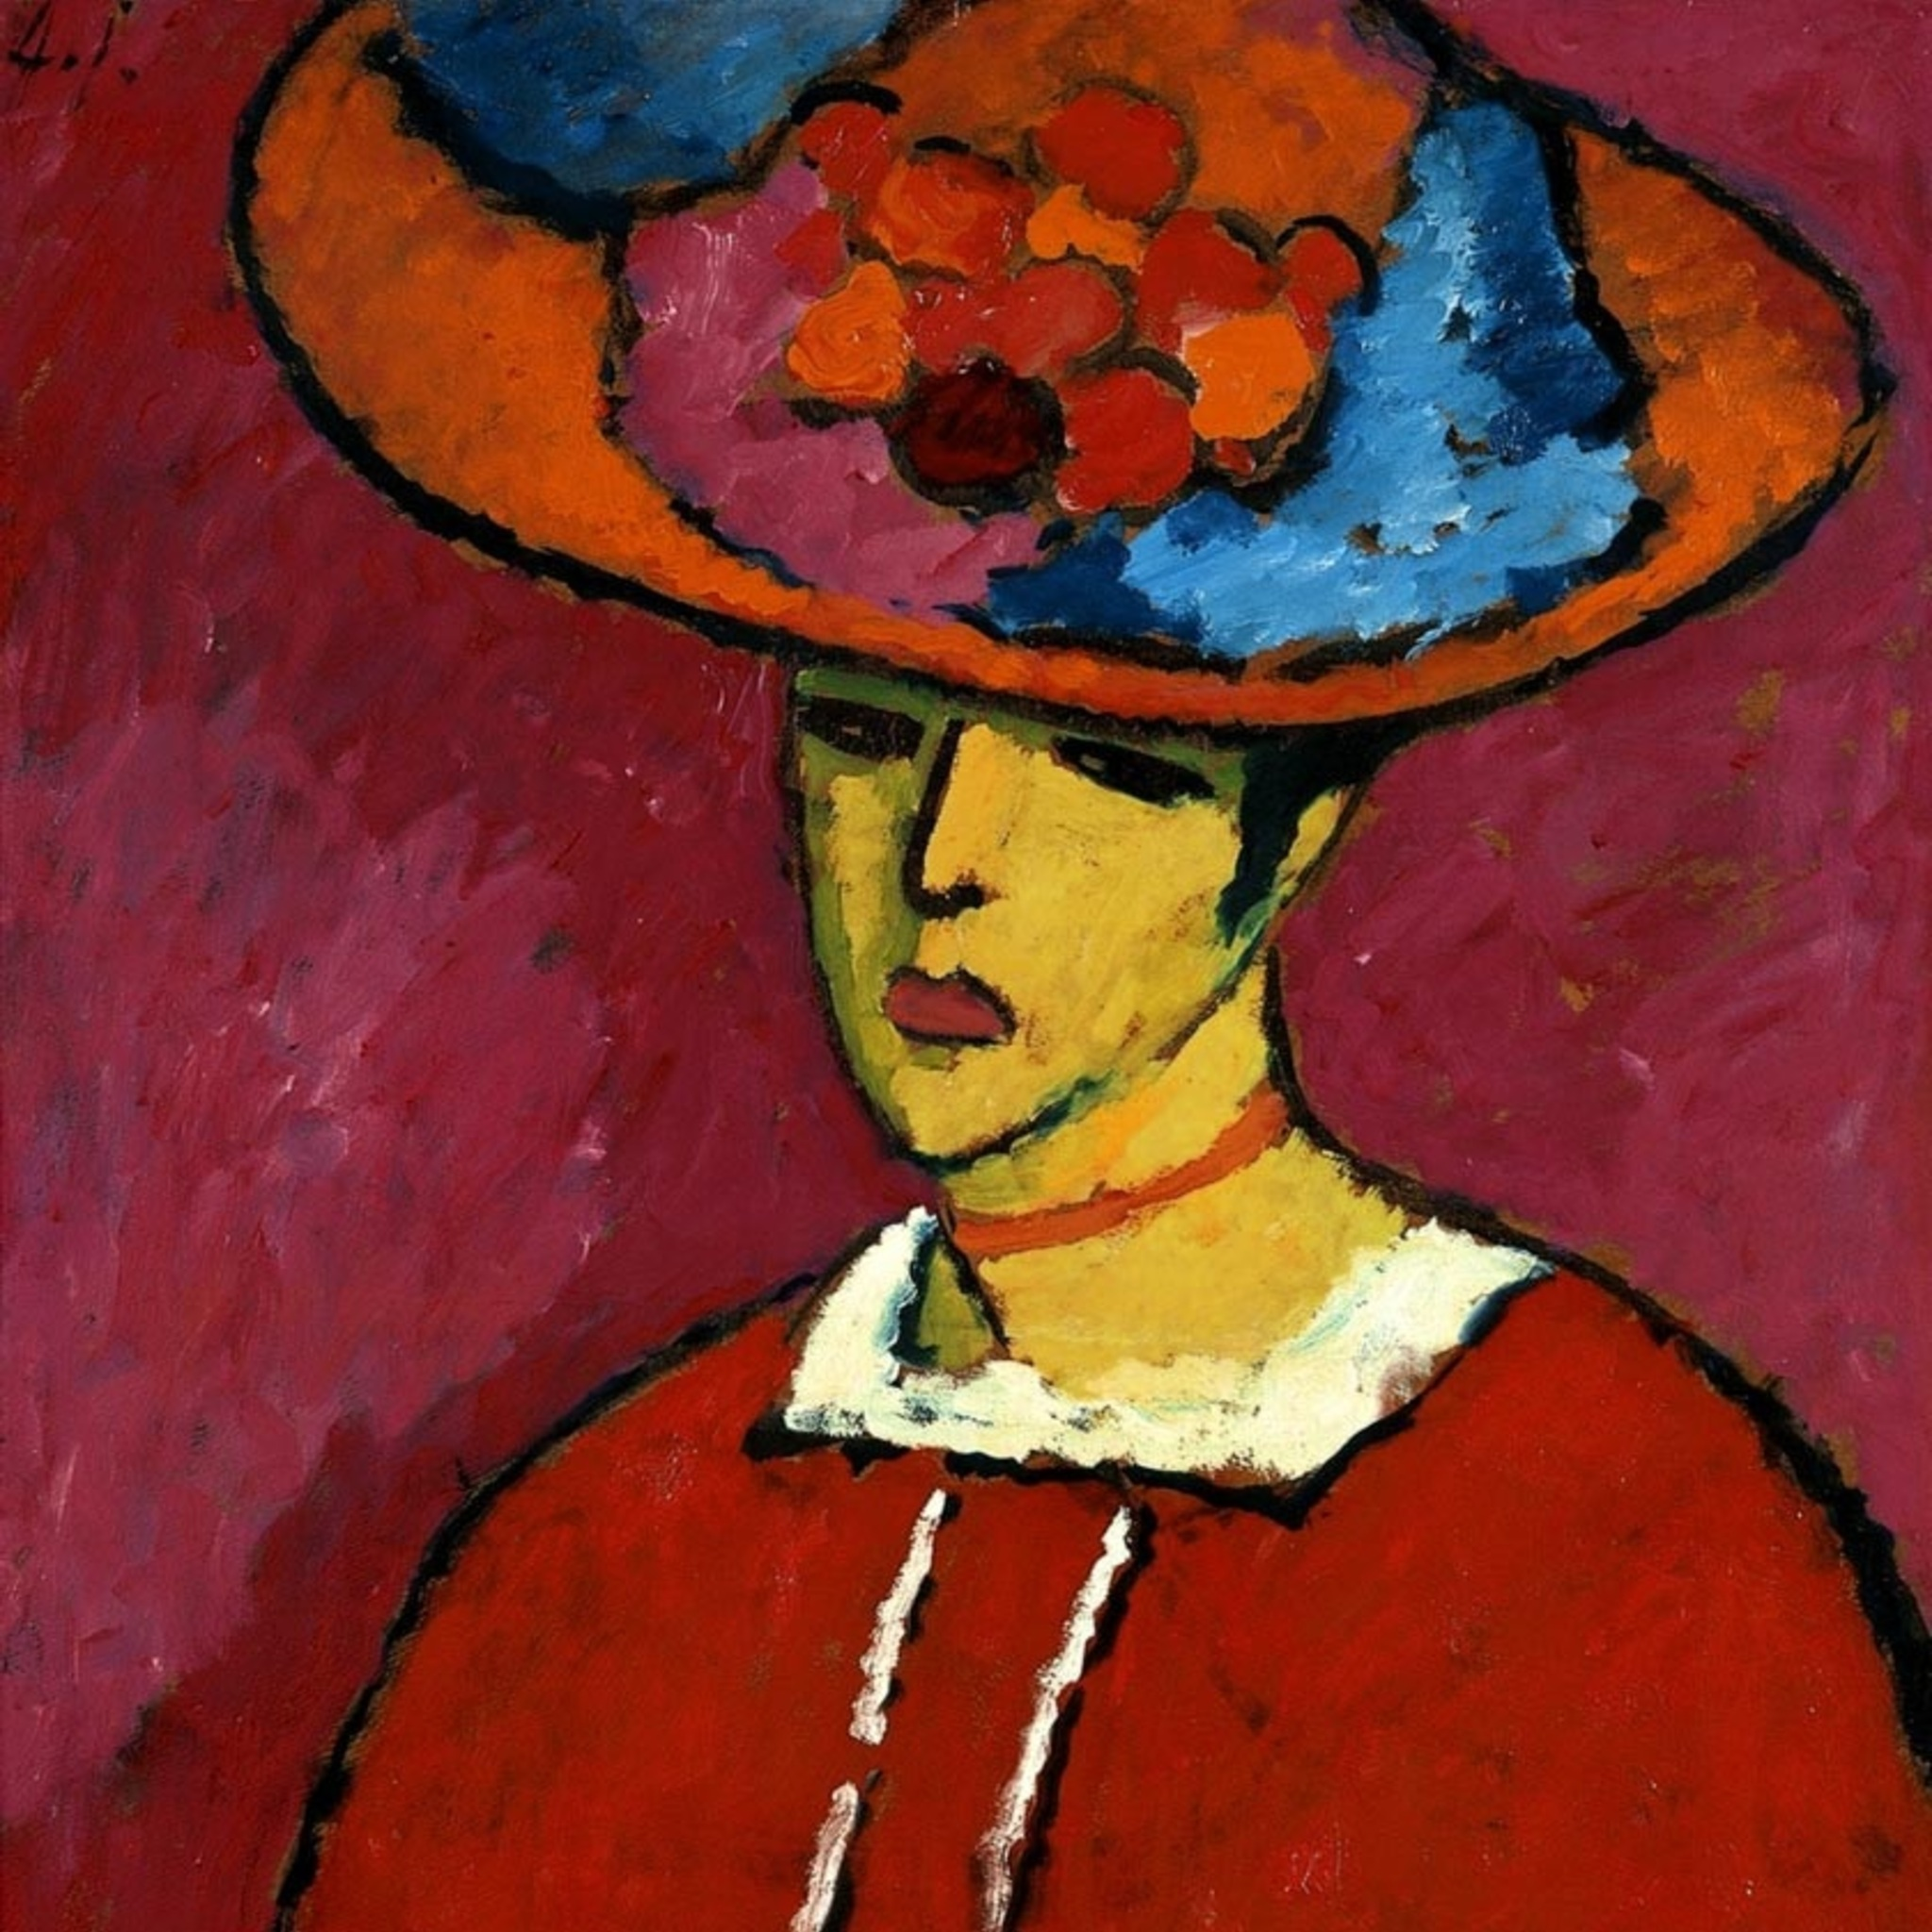 Lecture Alexei Jawlensky and German Expressionism